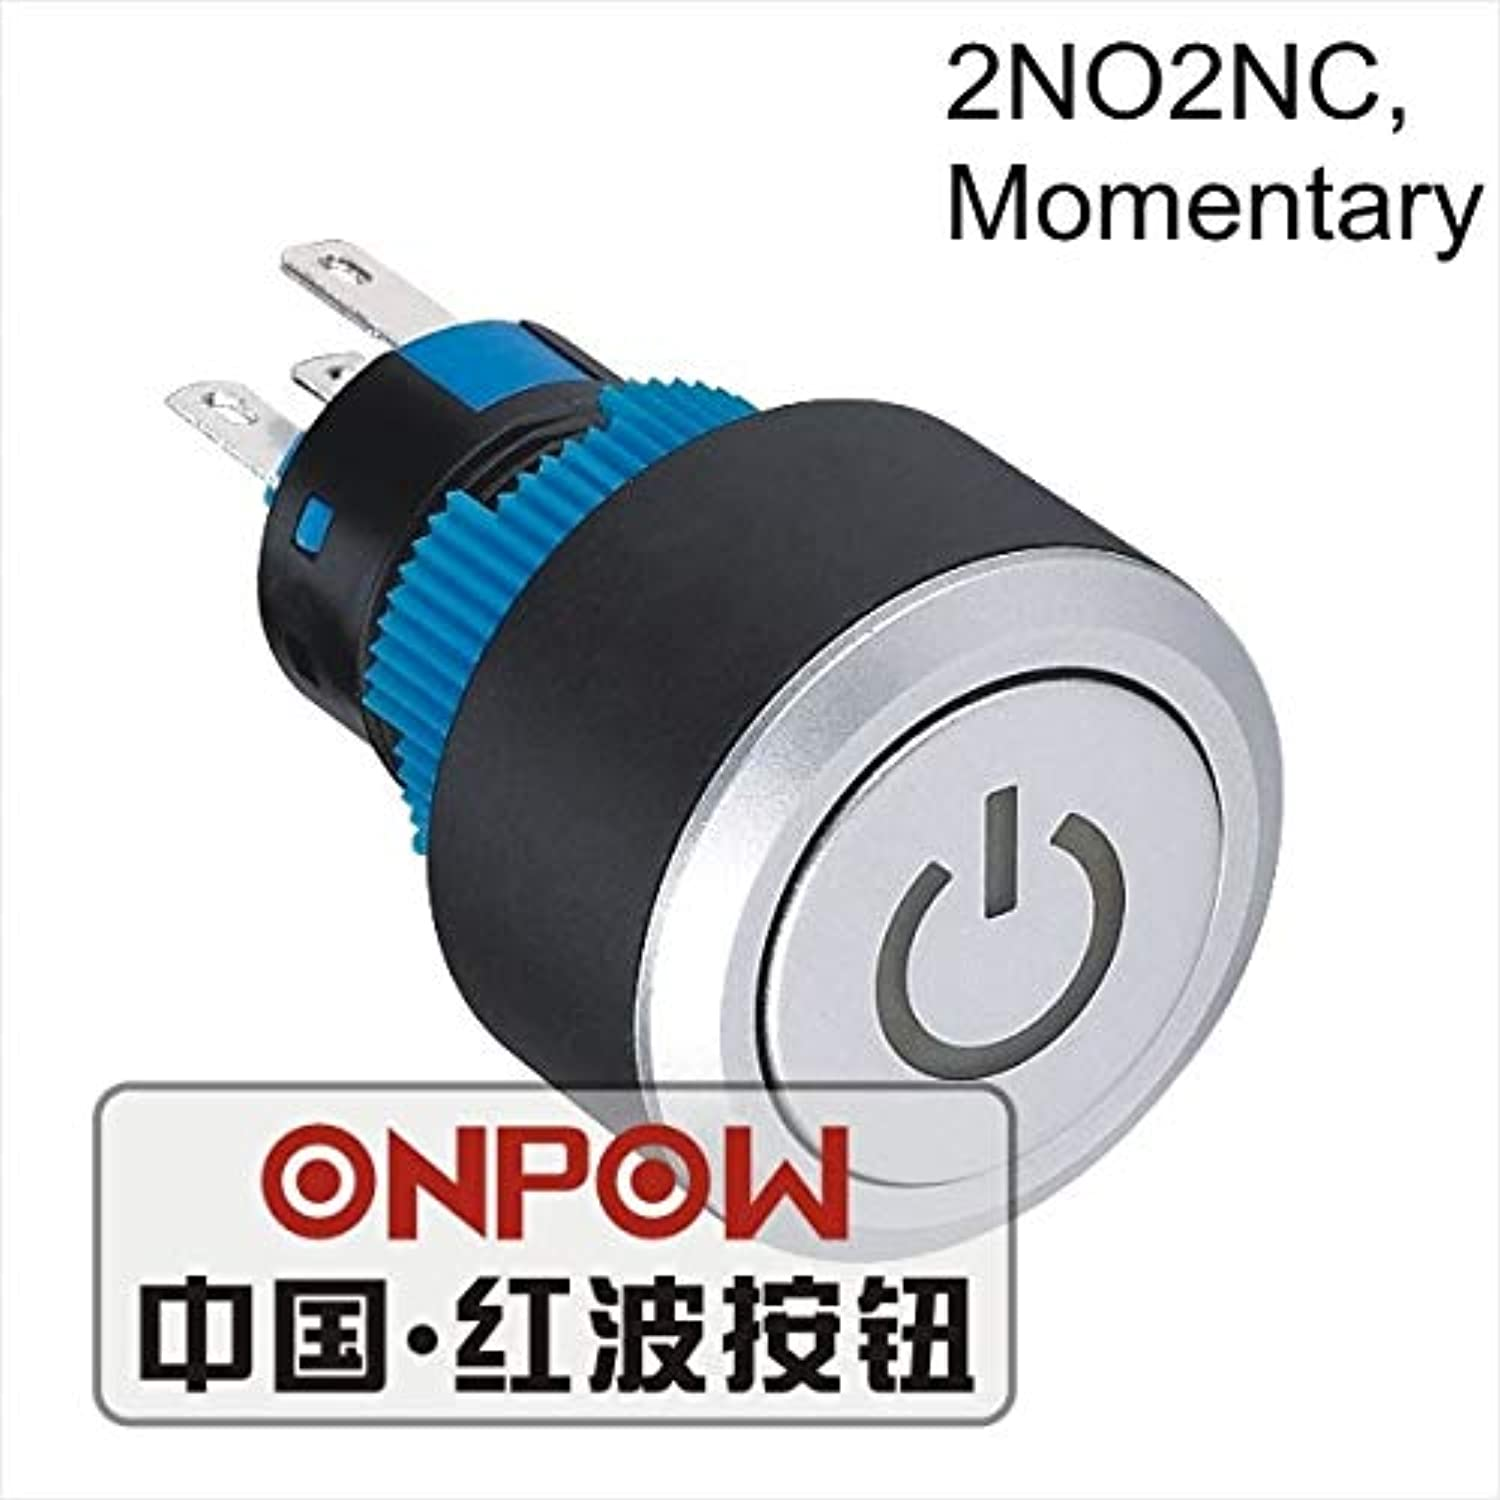 22mm Momentary 2NO2NC Round LED Illuminated Power Symbol Plastic Push Button Switch (LAS1AWY22T B 12V) CE, UL, ROHS  (color  Yellow, Voltage  6V)